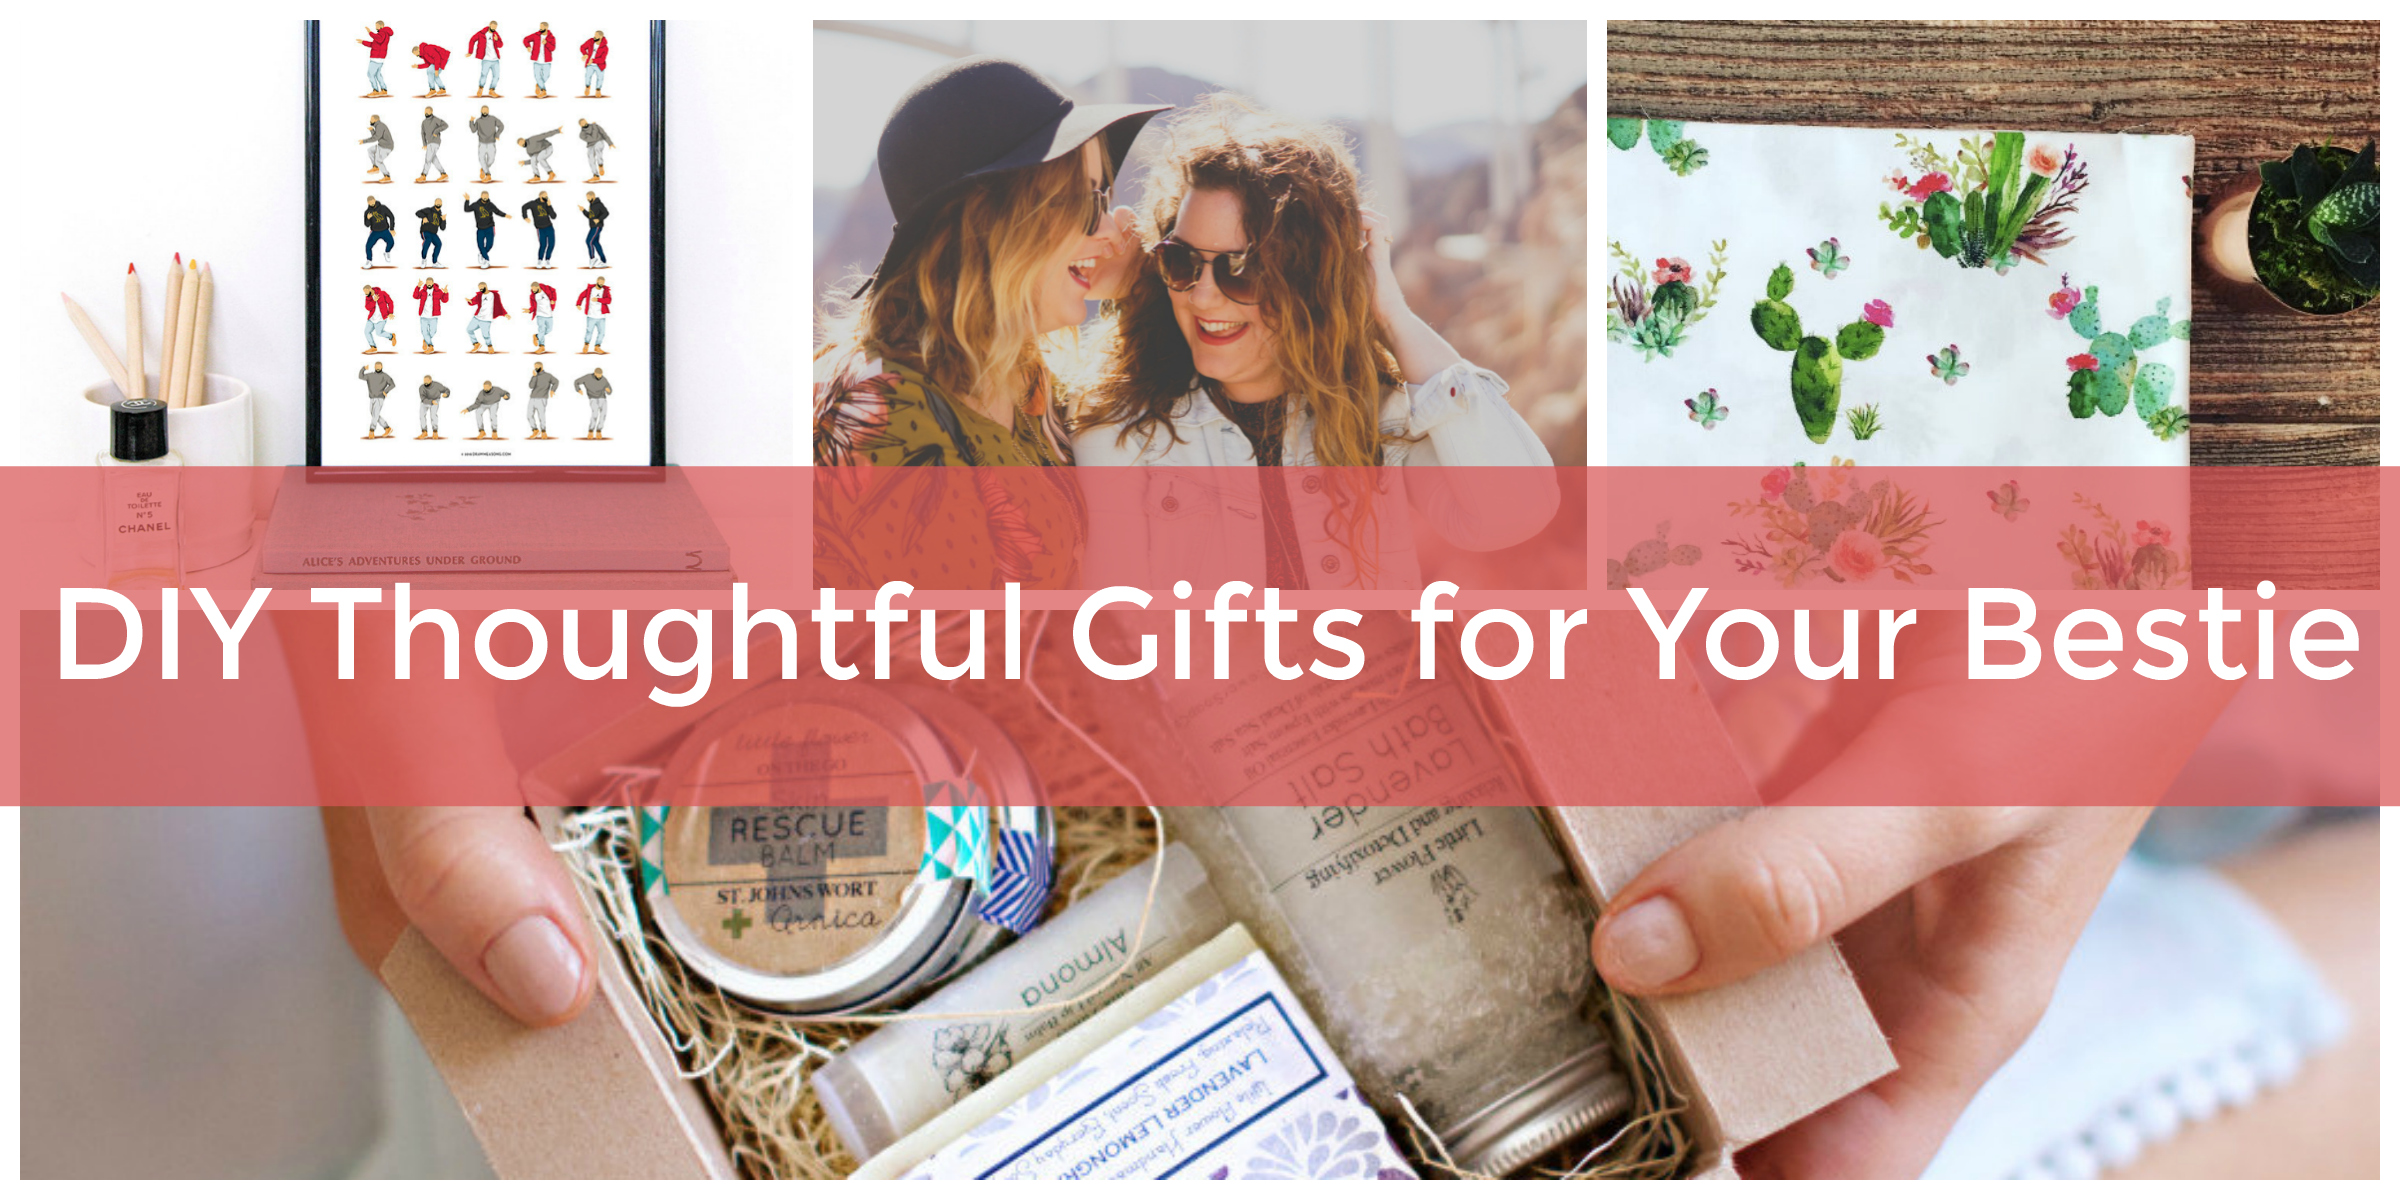 June 15 2017 Justina H Thoughtful Gifts For Your Bestie